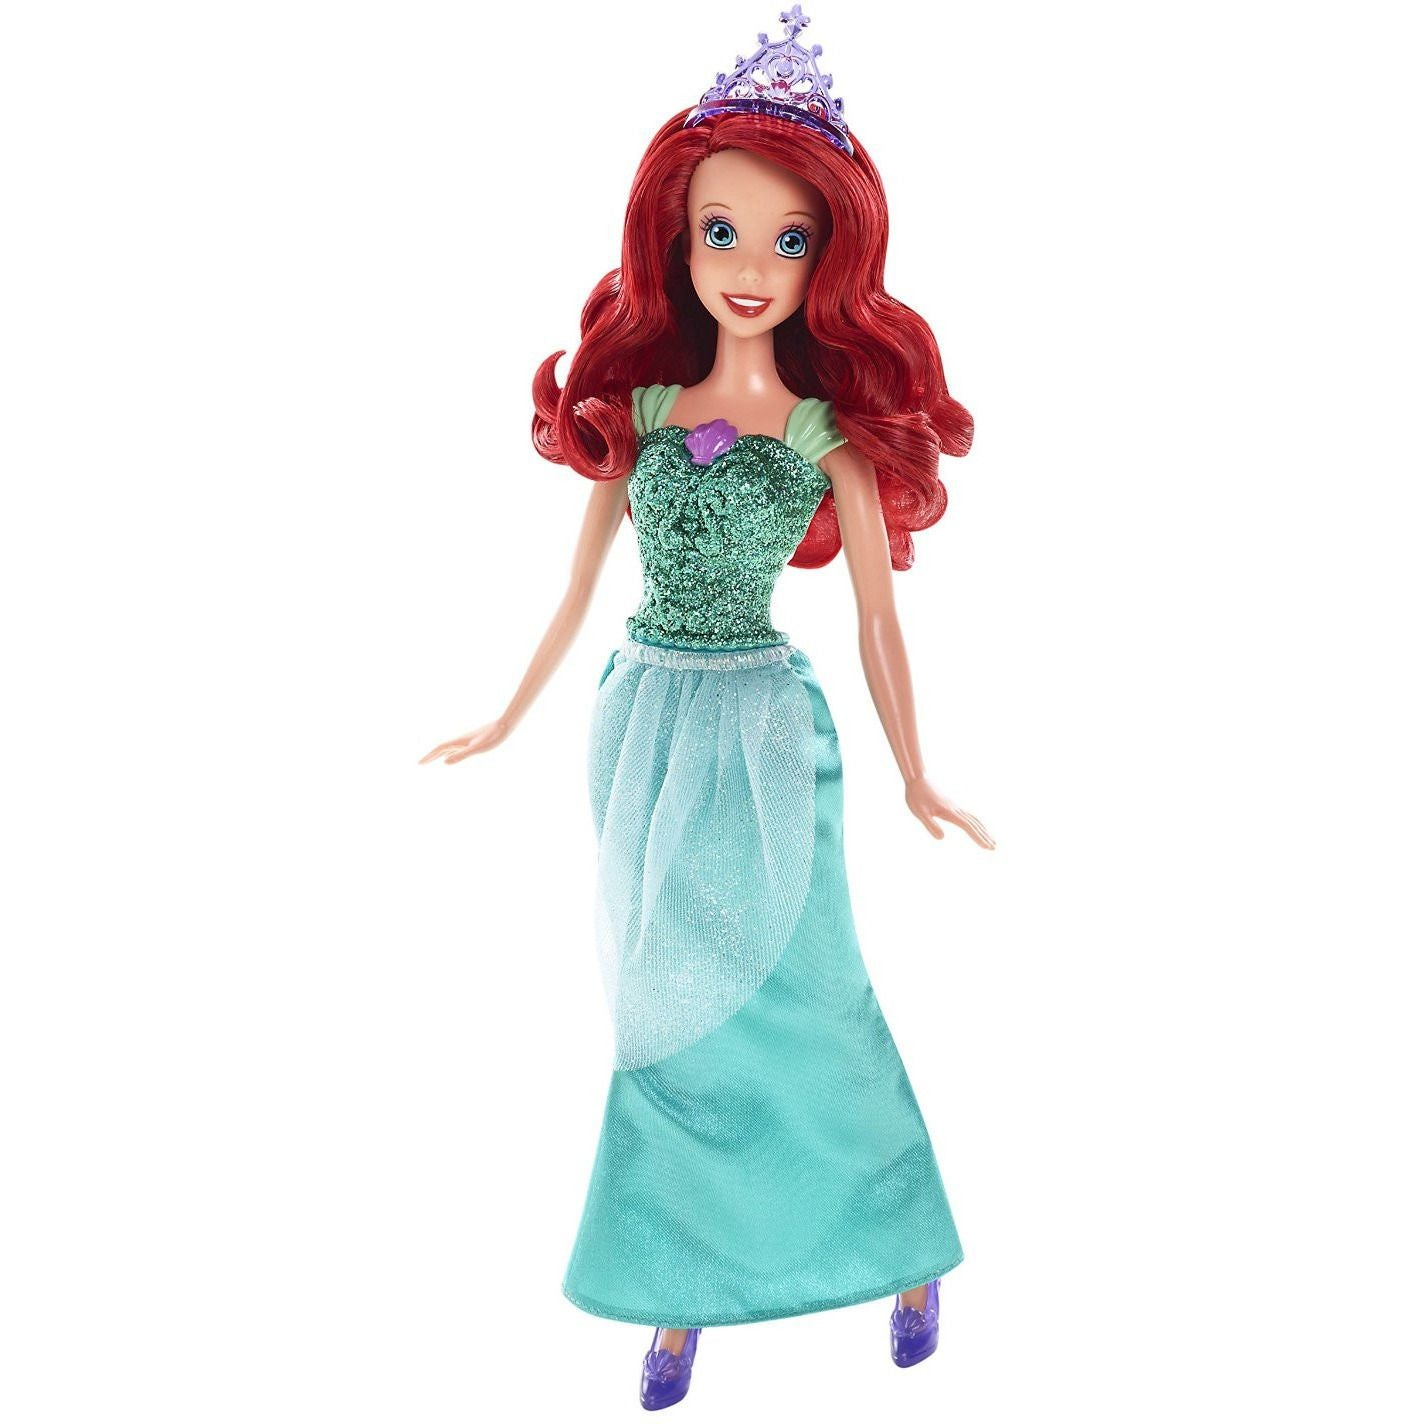 Disney Sparkle Princess Ariel Doll Uncanny!